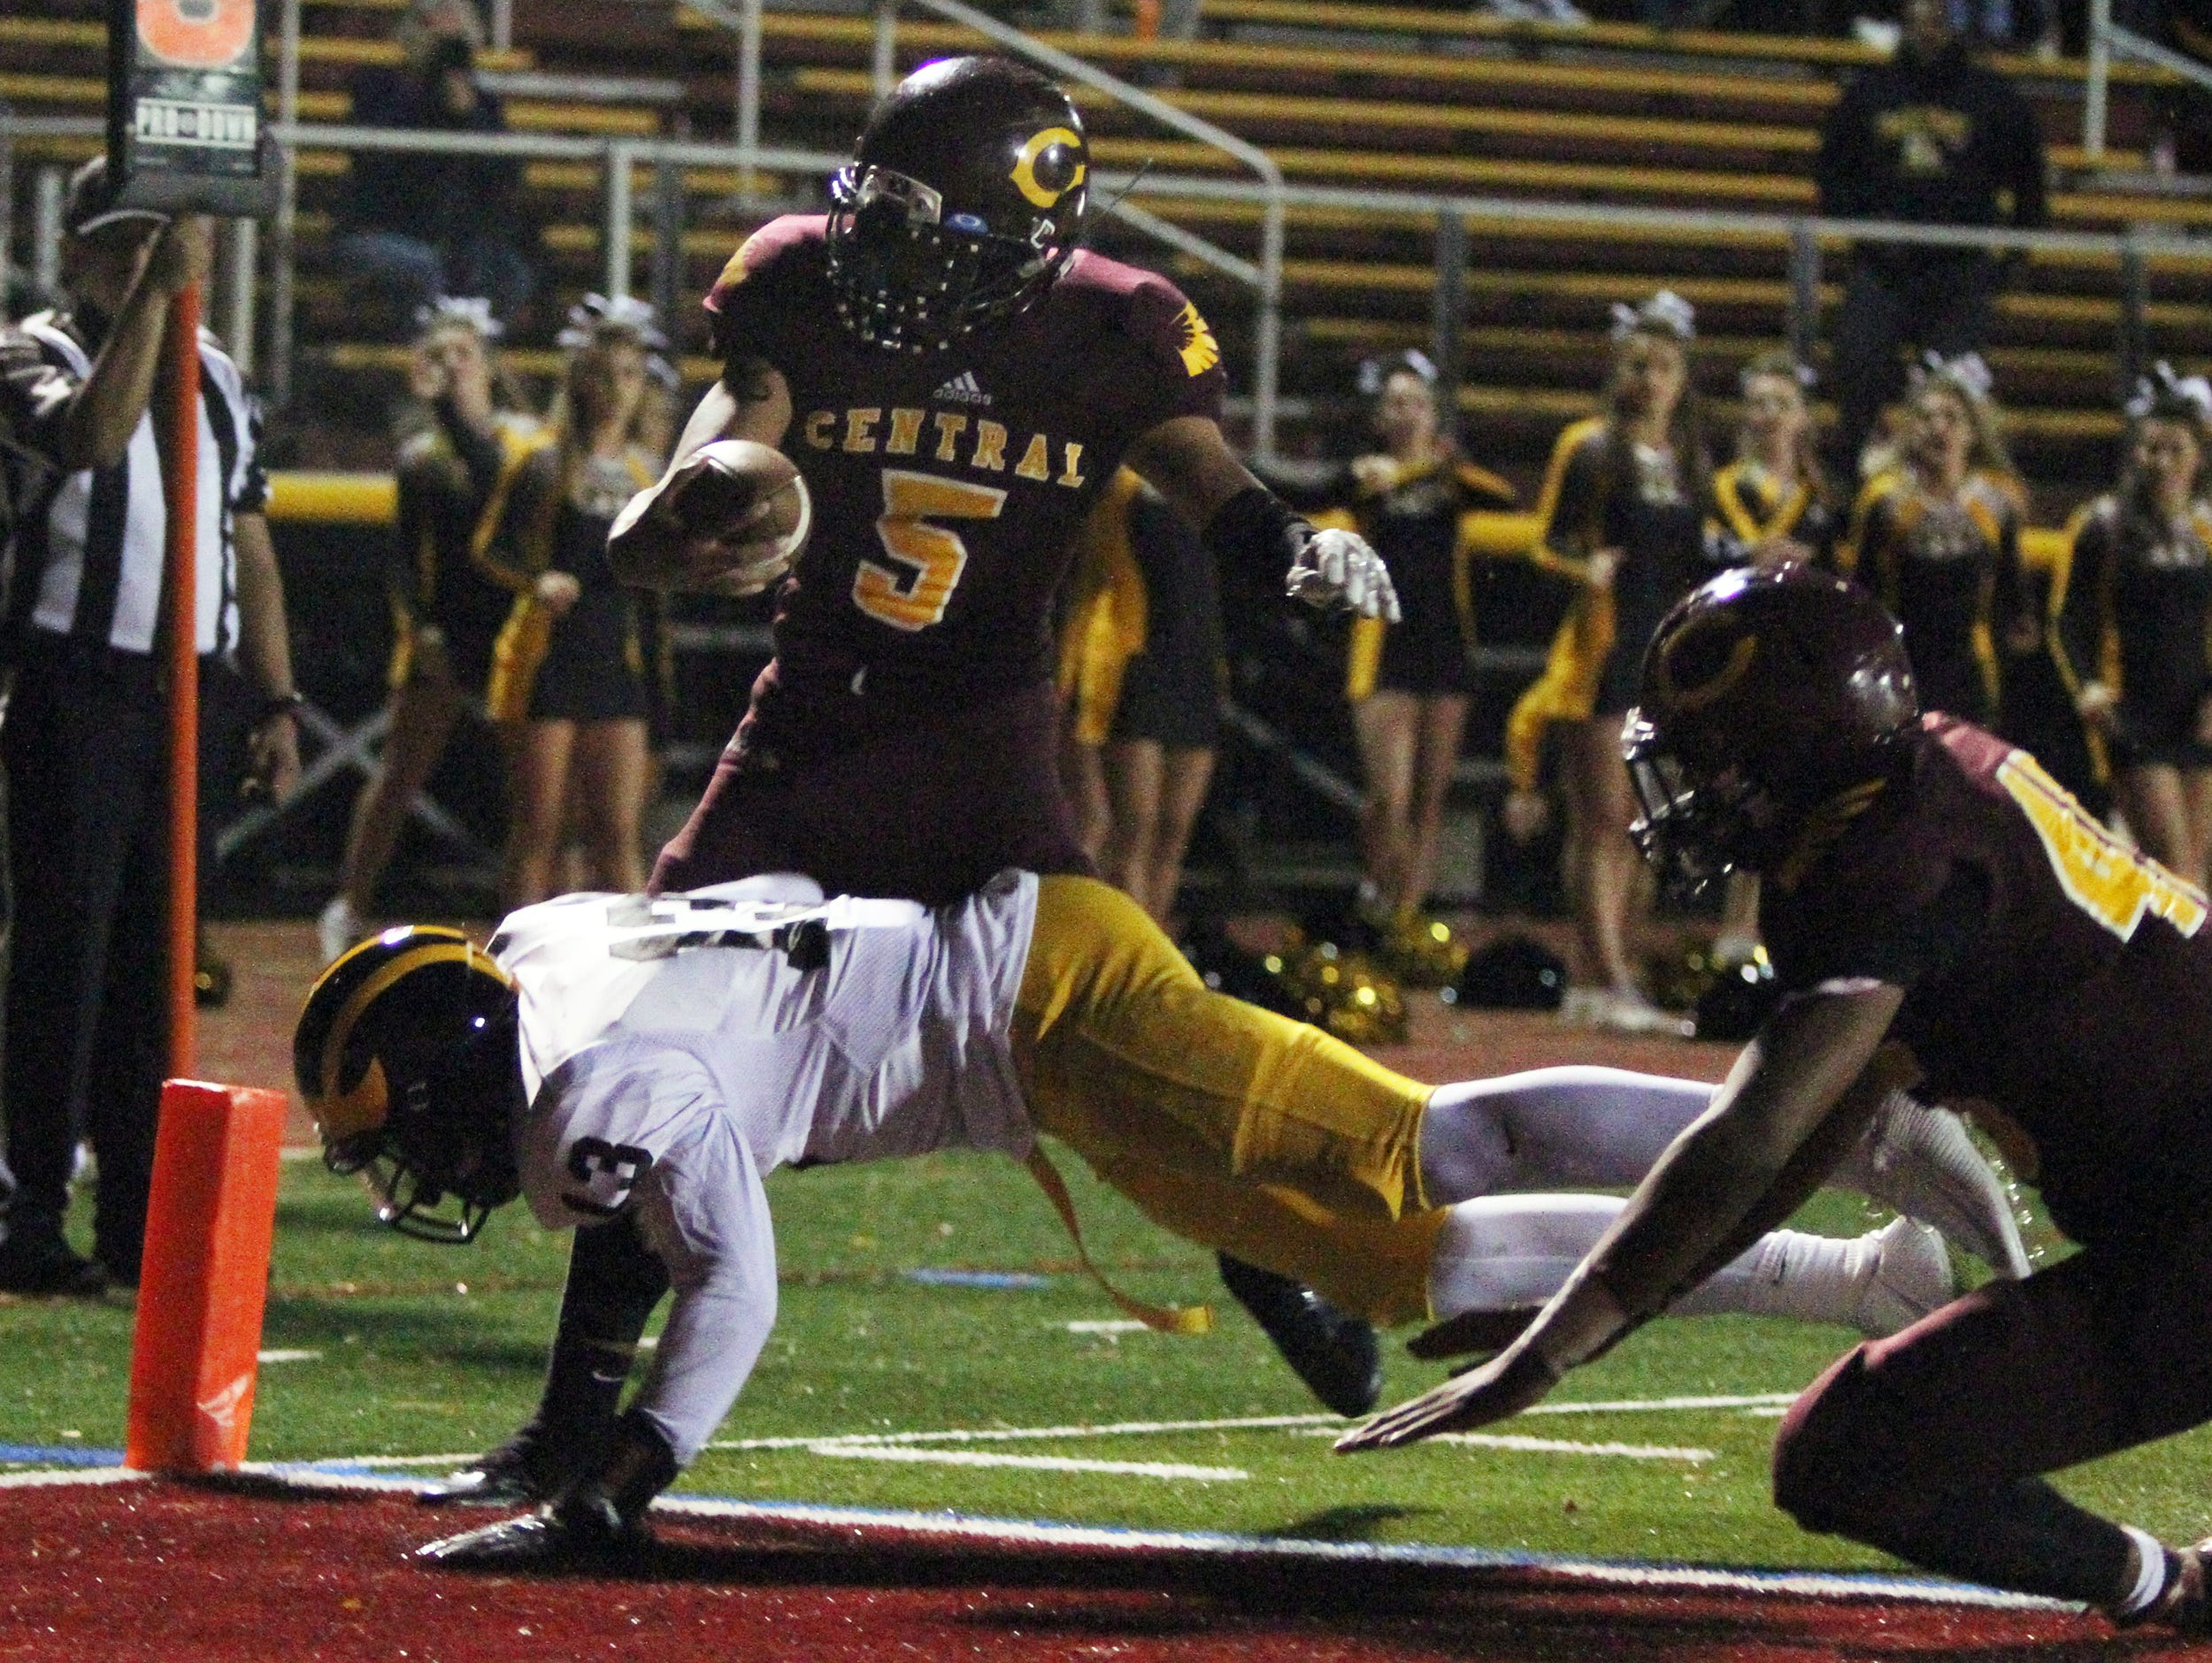 St. John Vianney at Central Regional High School football game held in Berkeley Twp. on Friday September 25 , 2015. Here Central Regional's # 5 quarterback Michael Miserendino gets around a diving tackle attempt from St. Joihn Vianney's # 13 (lower) Anthony Brown for a touchdown.